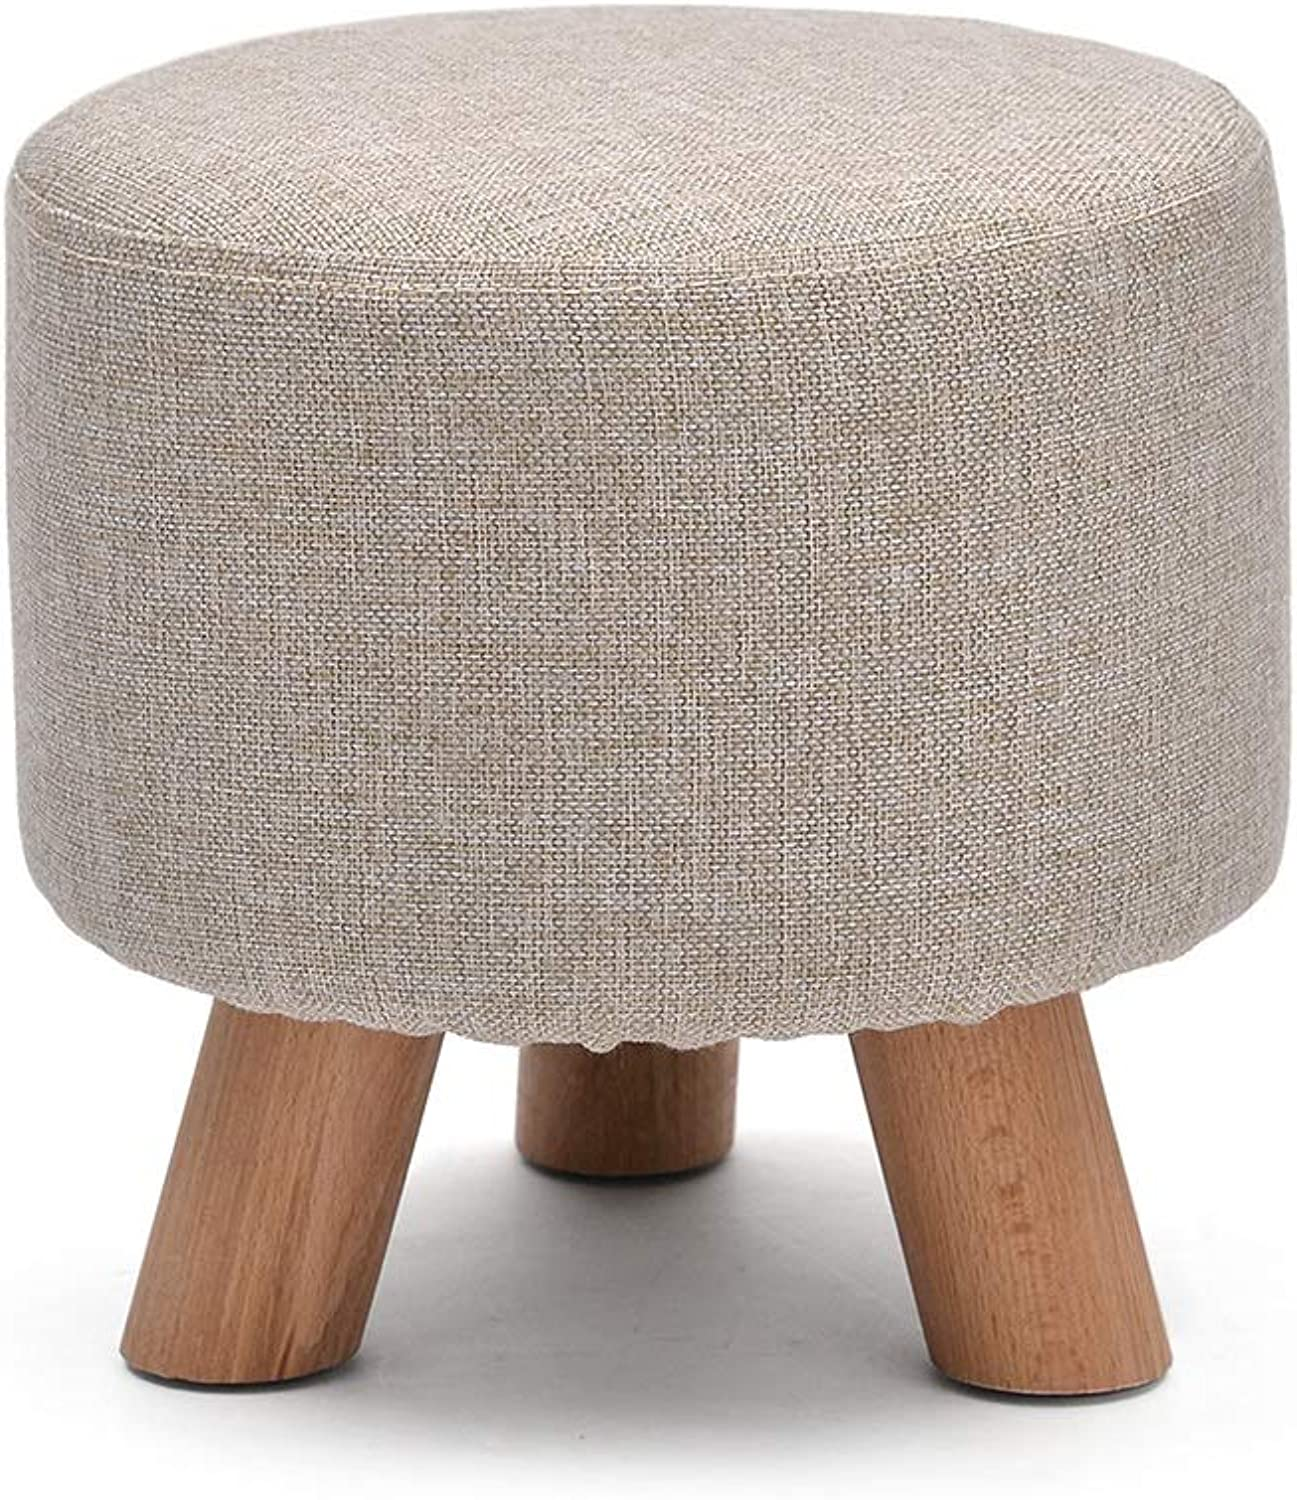 Footstool, Change shoes Stool Round Wooden Legs Cloth Cotton Sofa Living Room Bedroom Home HPLL (color   3, Size   29  29cm (3 Legs))